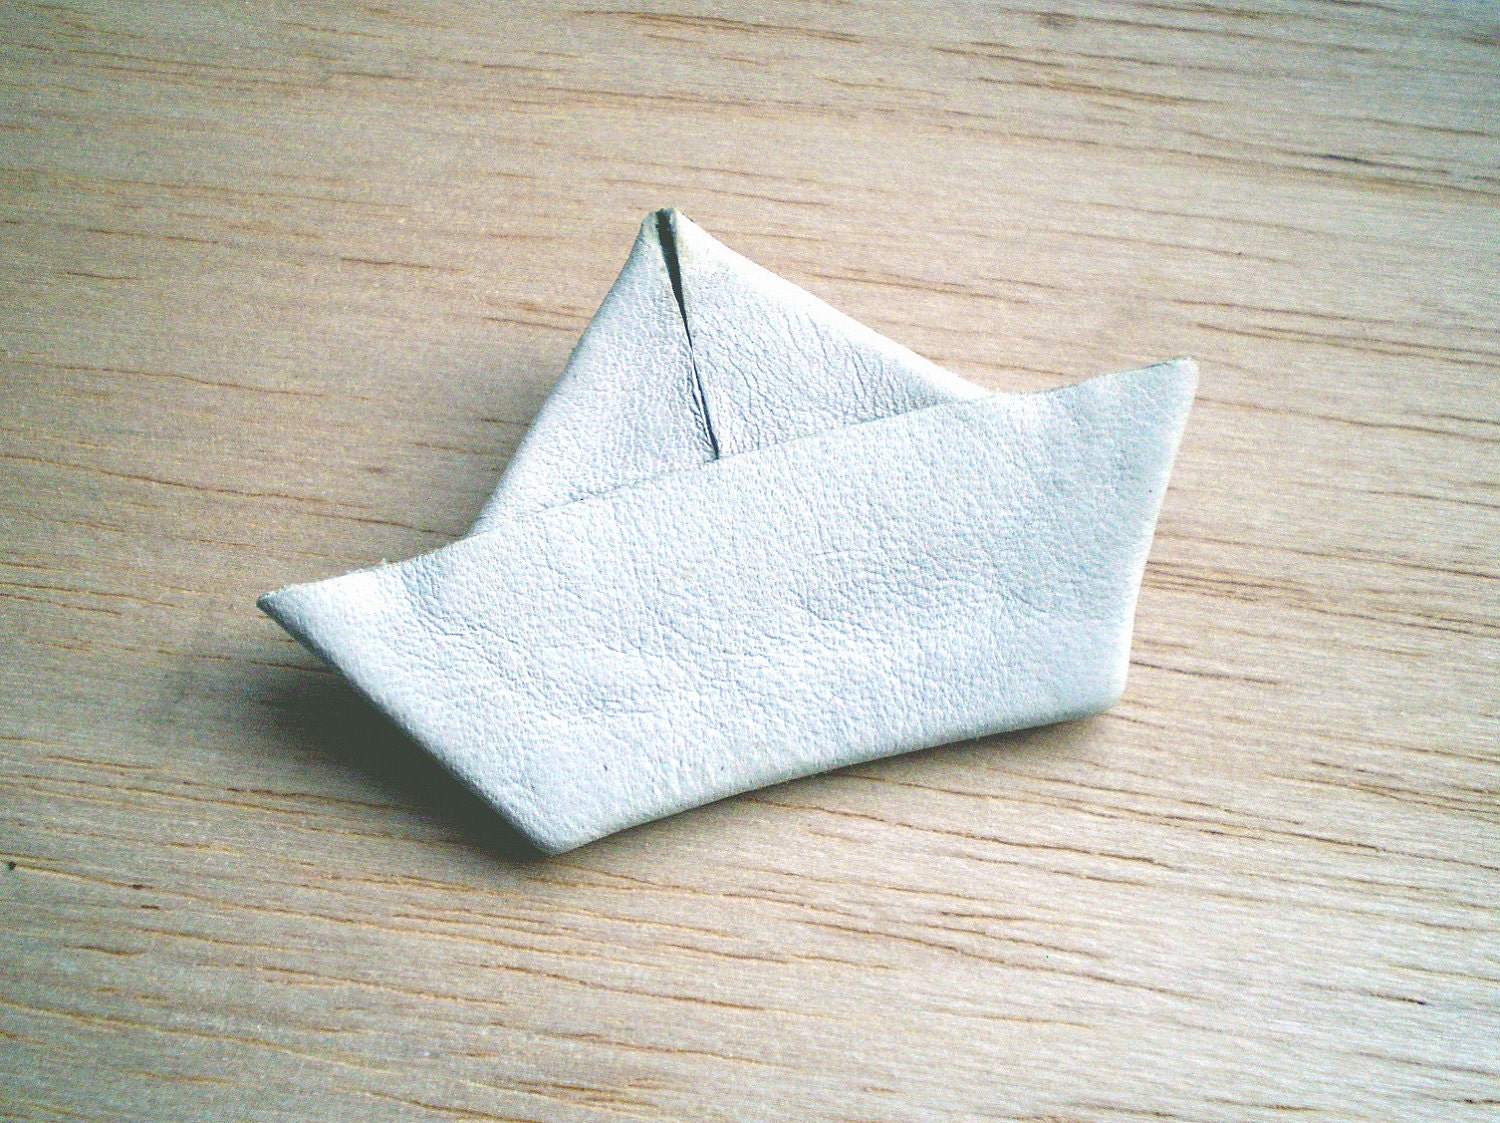 White paper boat pin, made of leather.